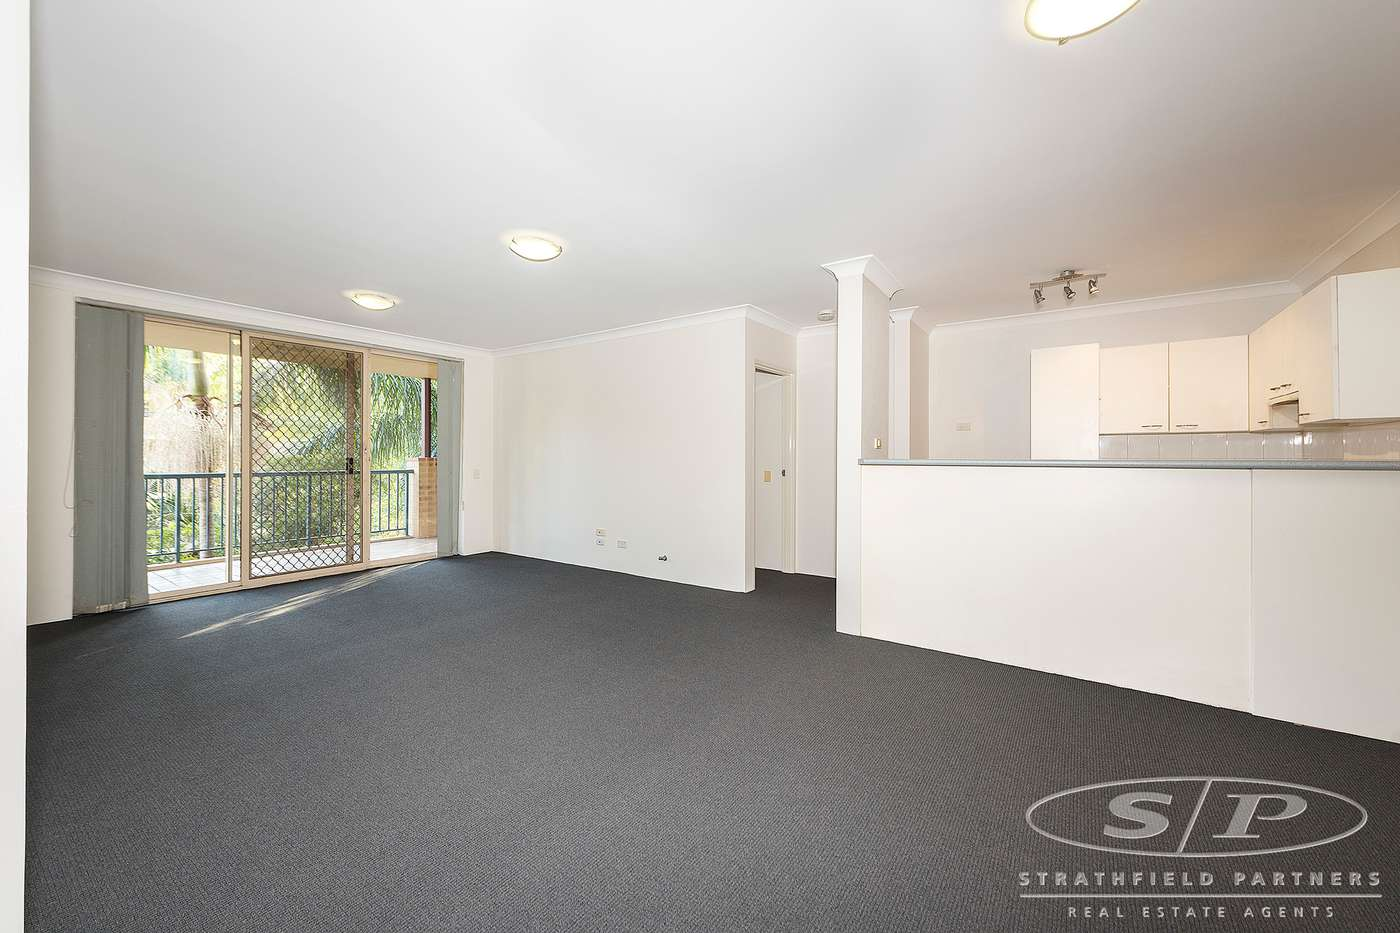 Main view of Homely apartment listing, 19J/19-21 George Street, North Strathfield, NSW 2137